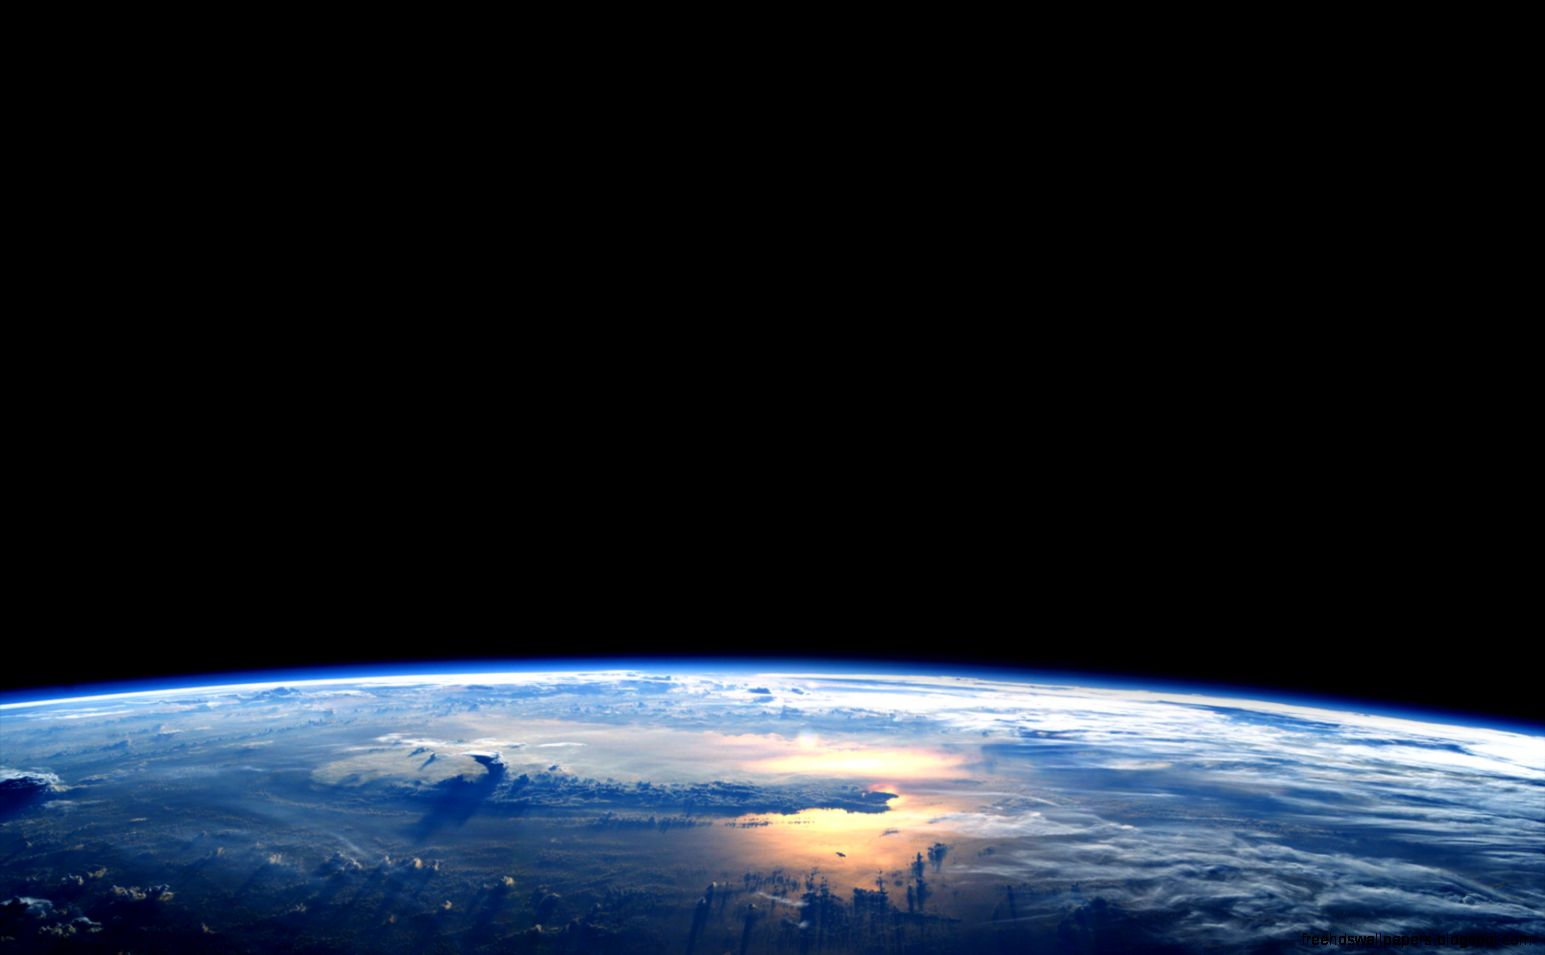 earth from space wallpaper | free hd wallpapers